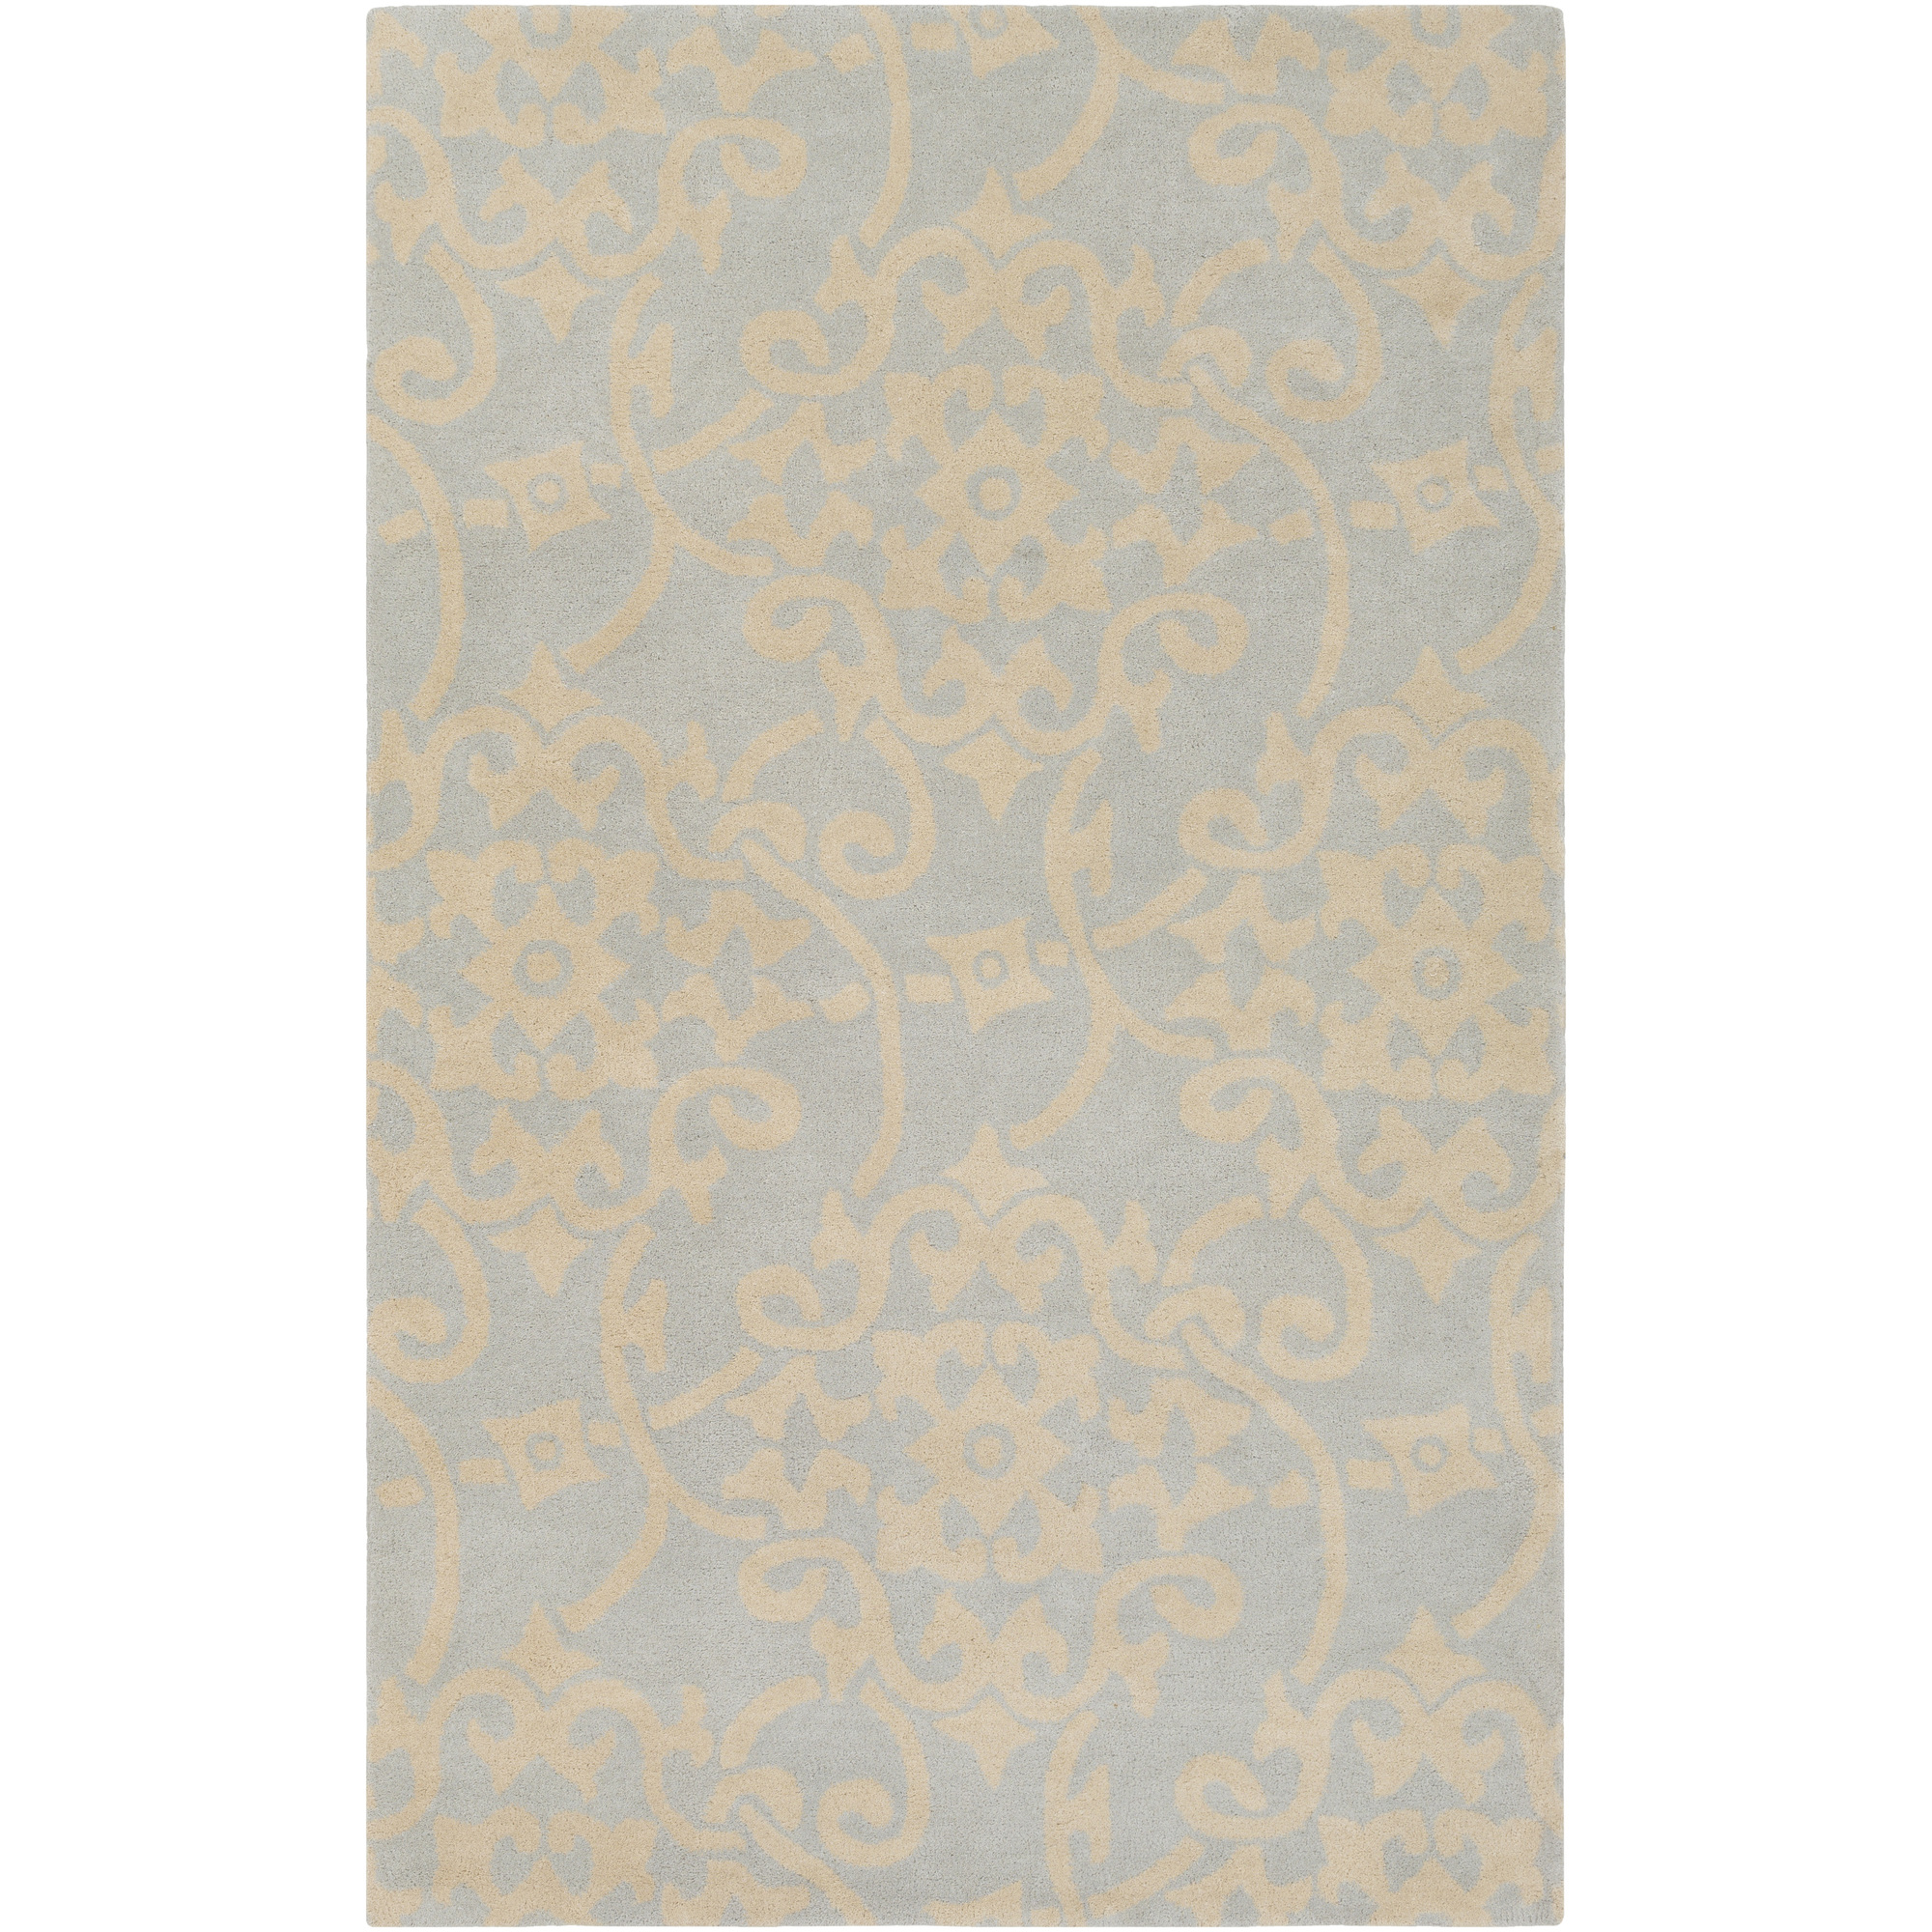 Art of Knot Annan 5' x 8' Rectangular Area Rug